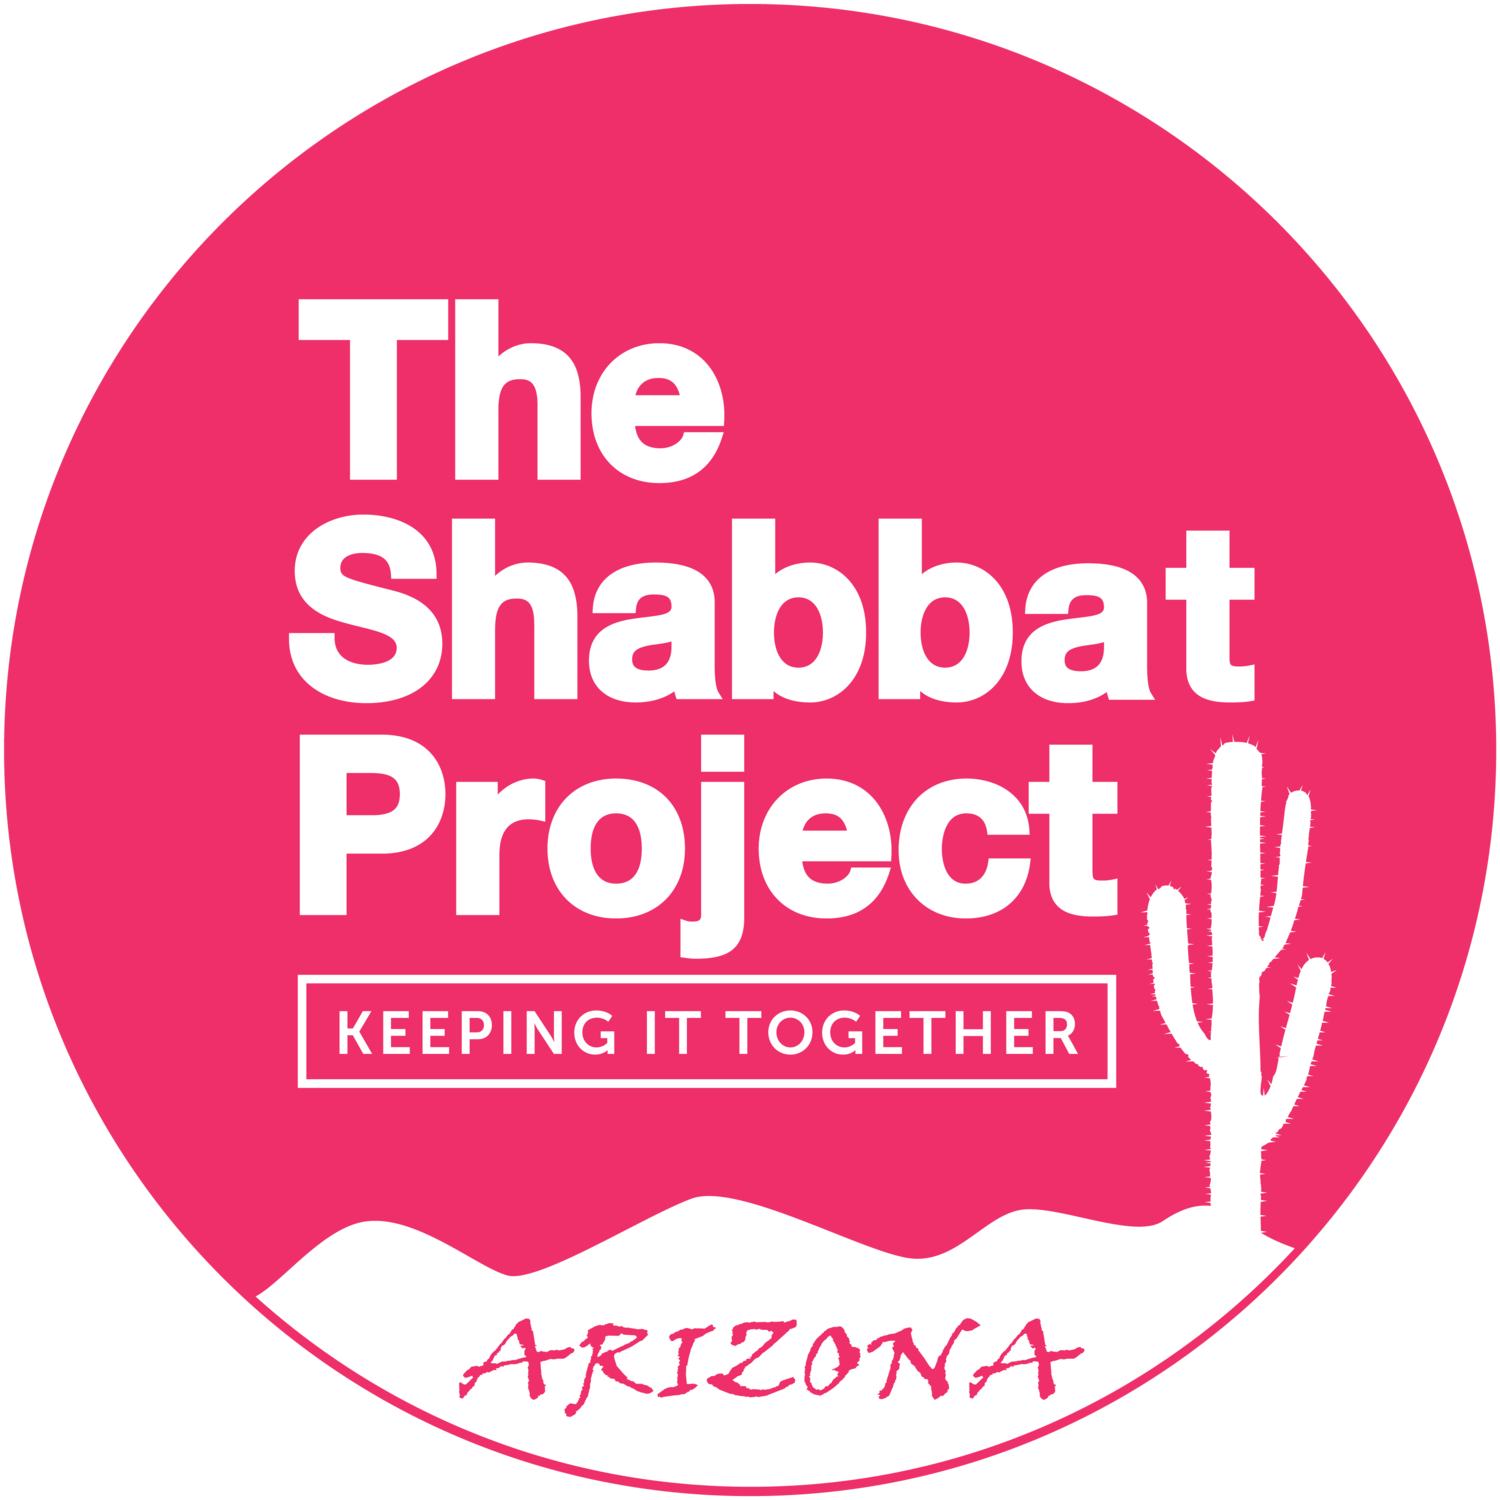 The Shabbat Project AZ